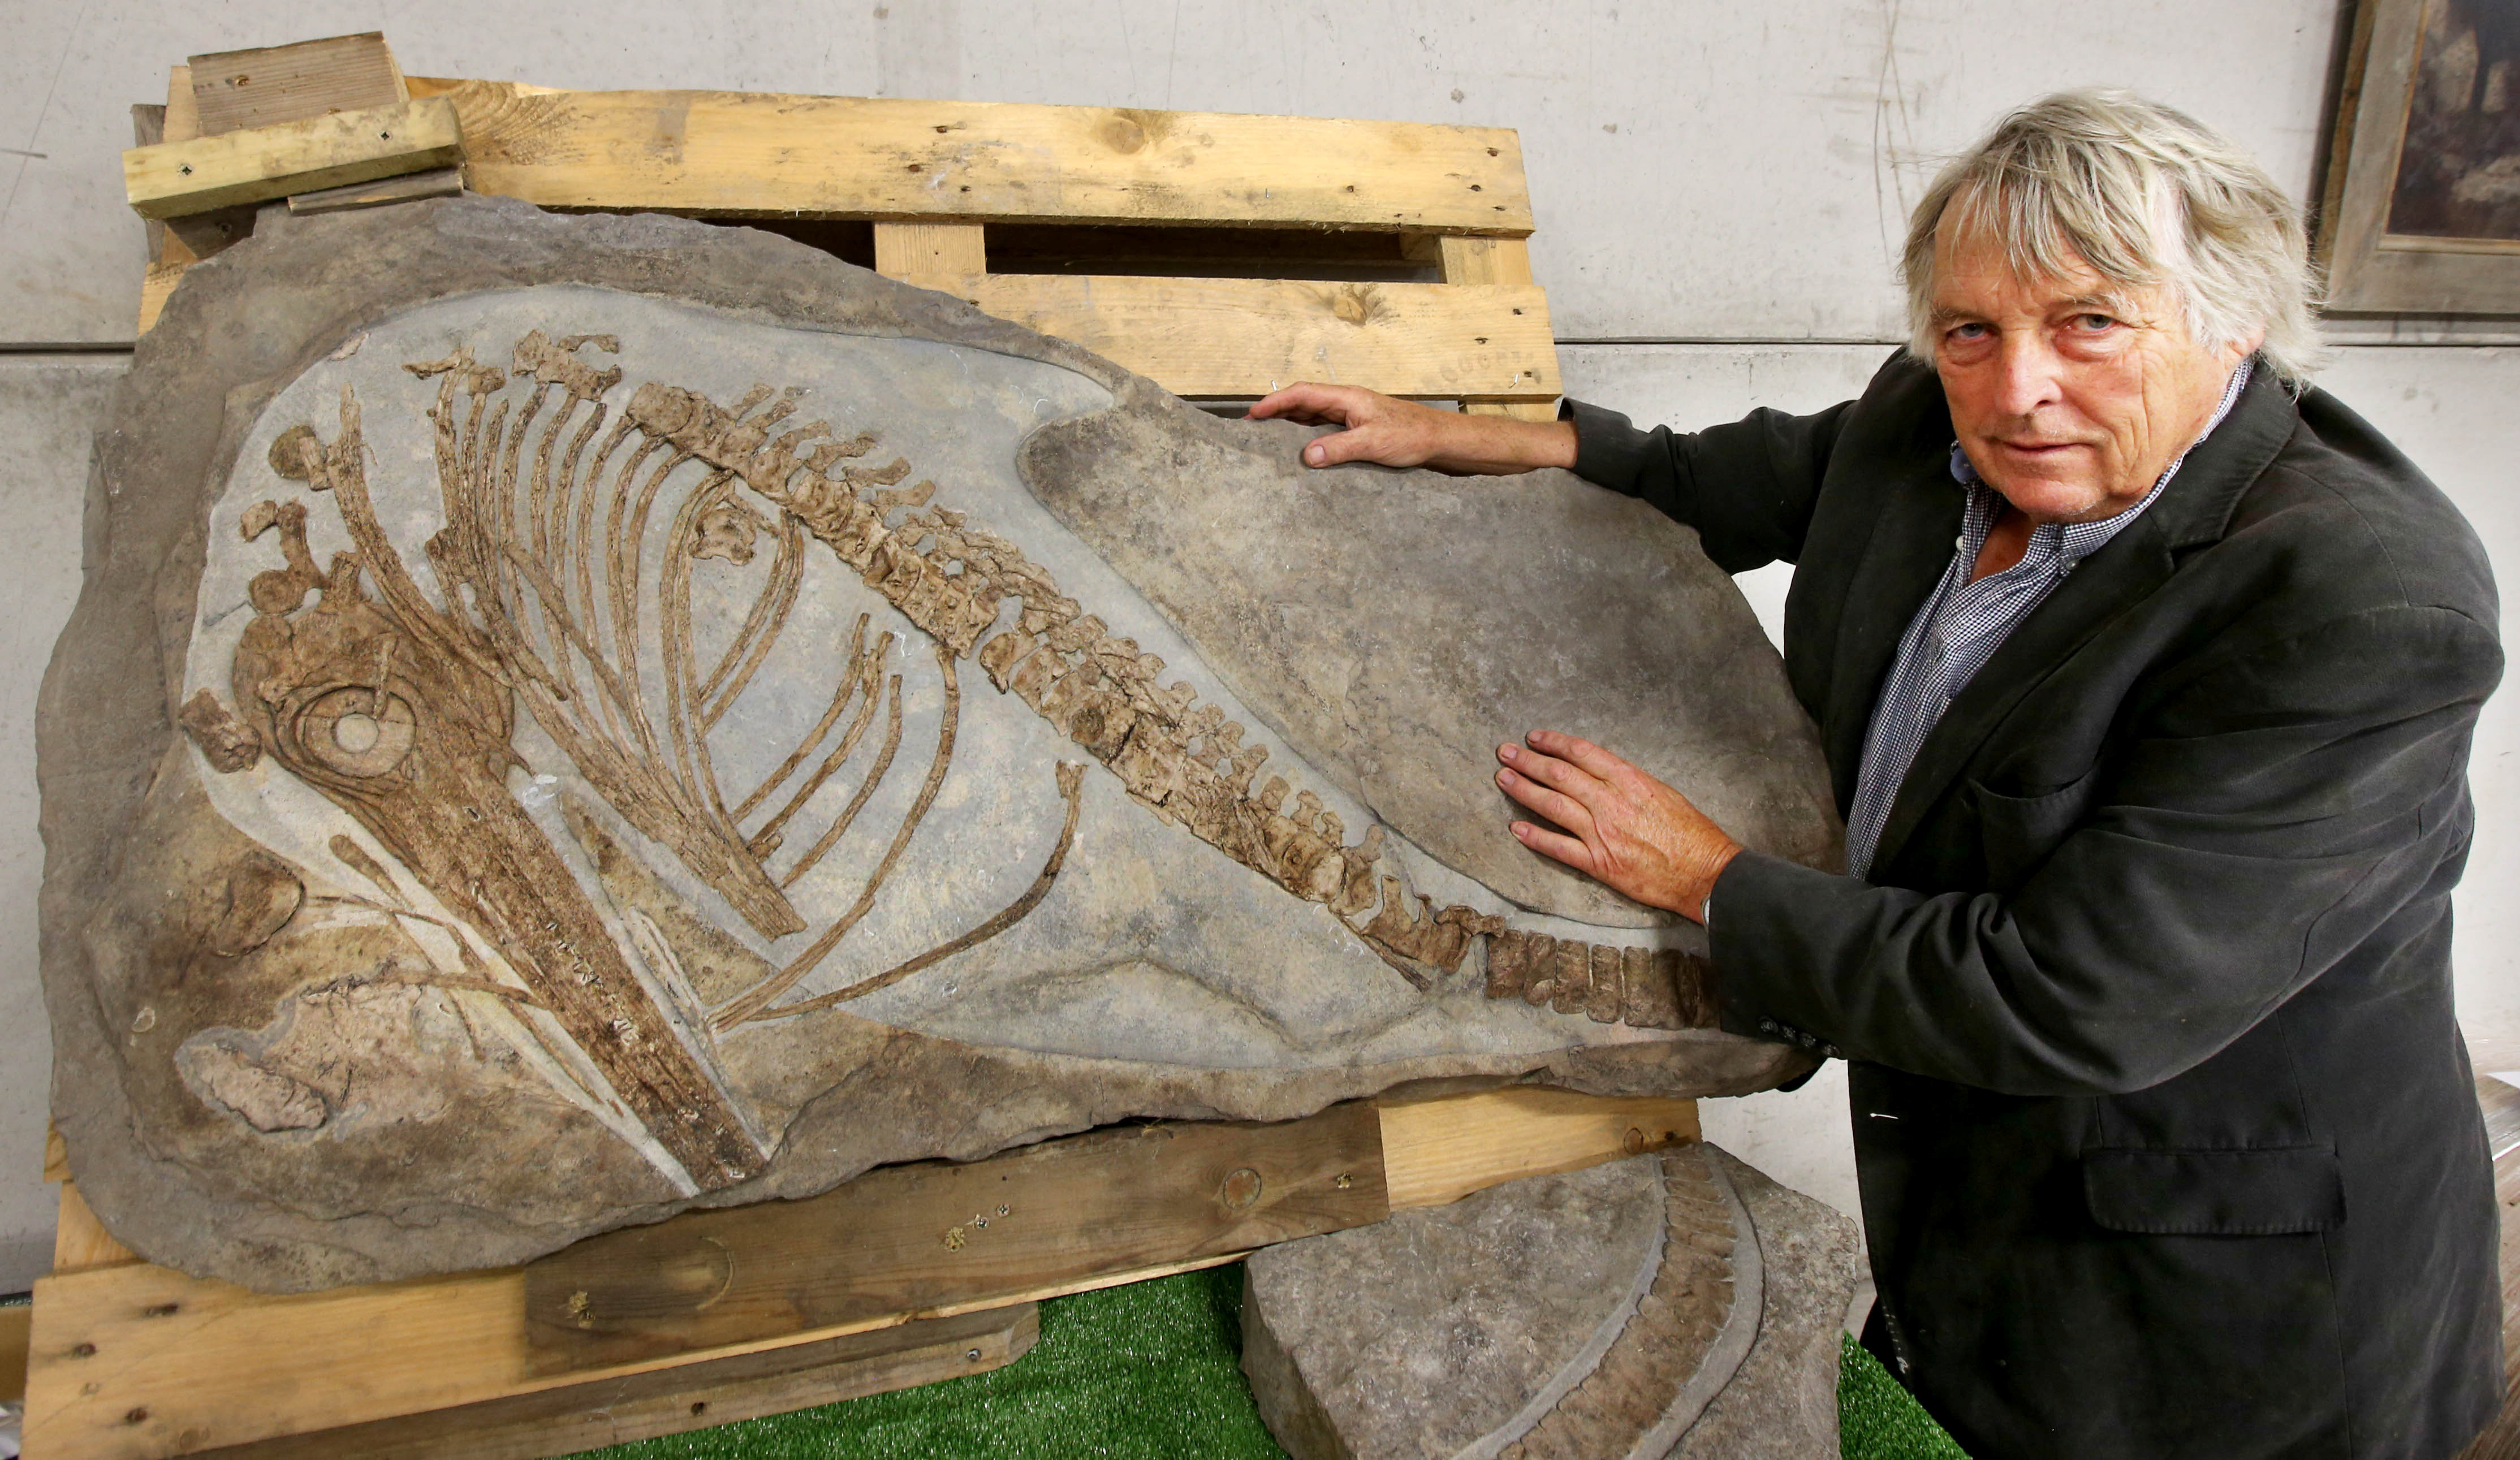 Cider brandy maker Julian Temperley next to the 90-million-year-old ichthyosaurus fossil (SWNS)